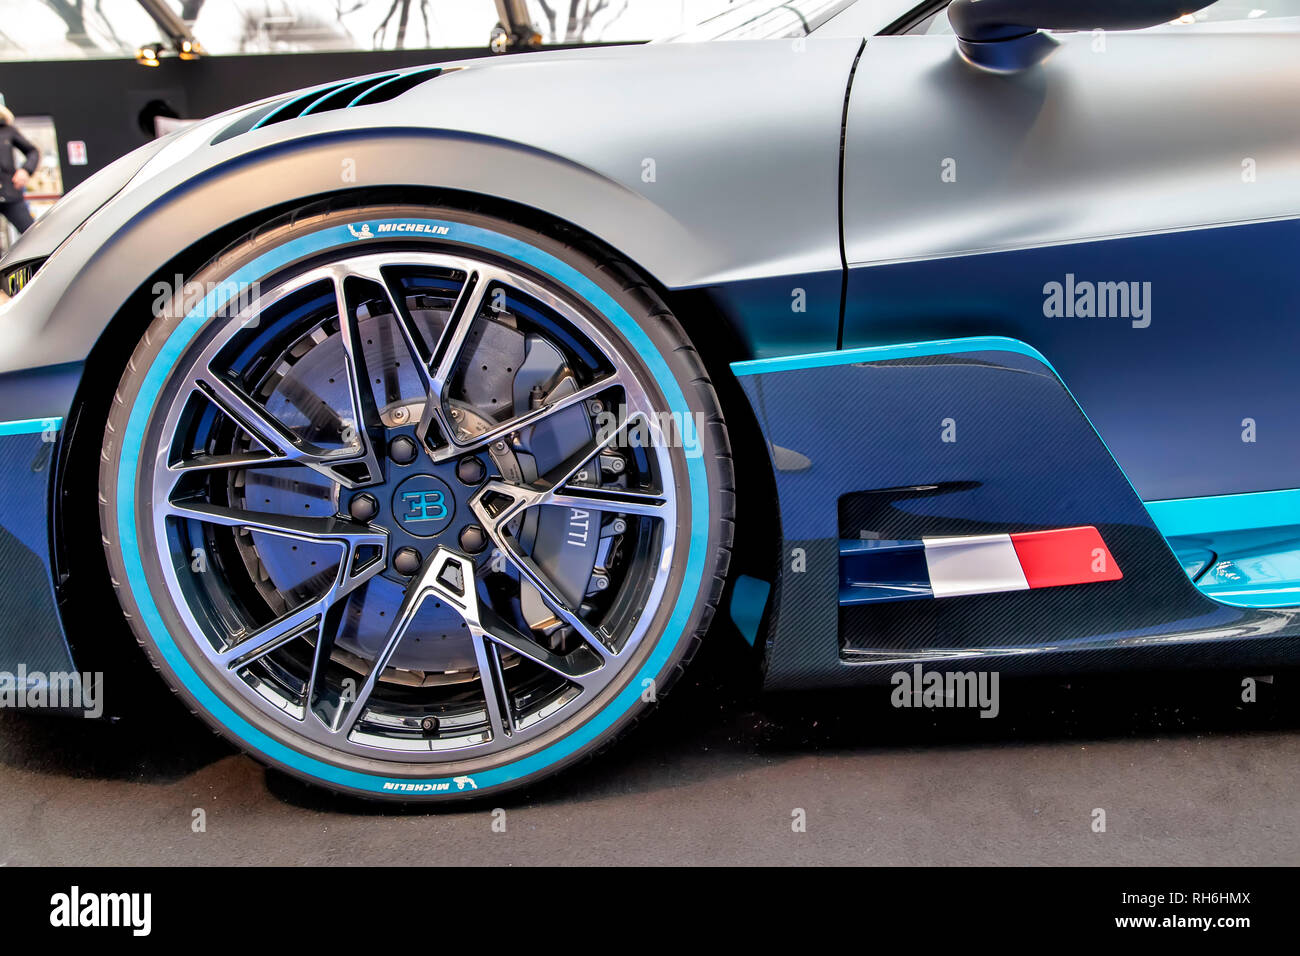 Paris, France. 31st Jan, 2019. Bugatti Divo - The International Automobile Festival brings together in Paris the most beautiful concept cars made by car manufacturers, from January 30th to February 31st, 2019. Credit: Bernard Menigault/Alamy Live News Stock Photo